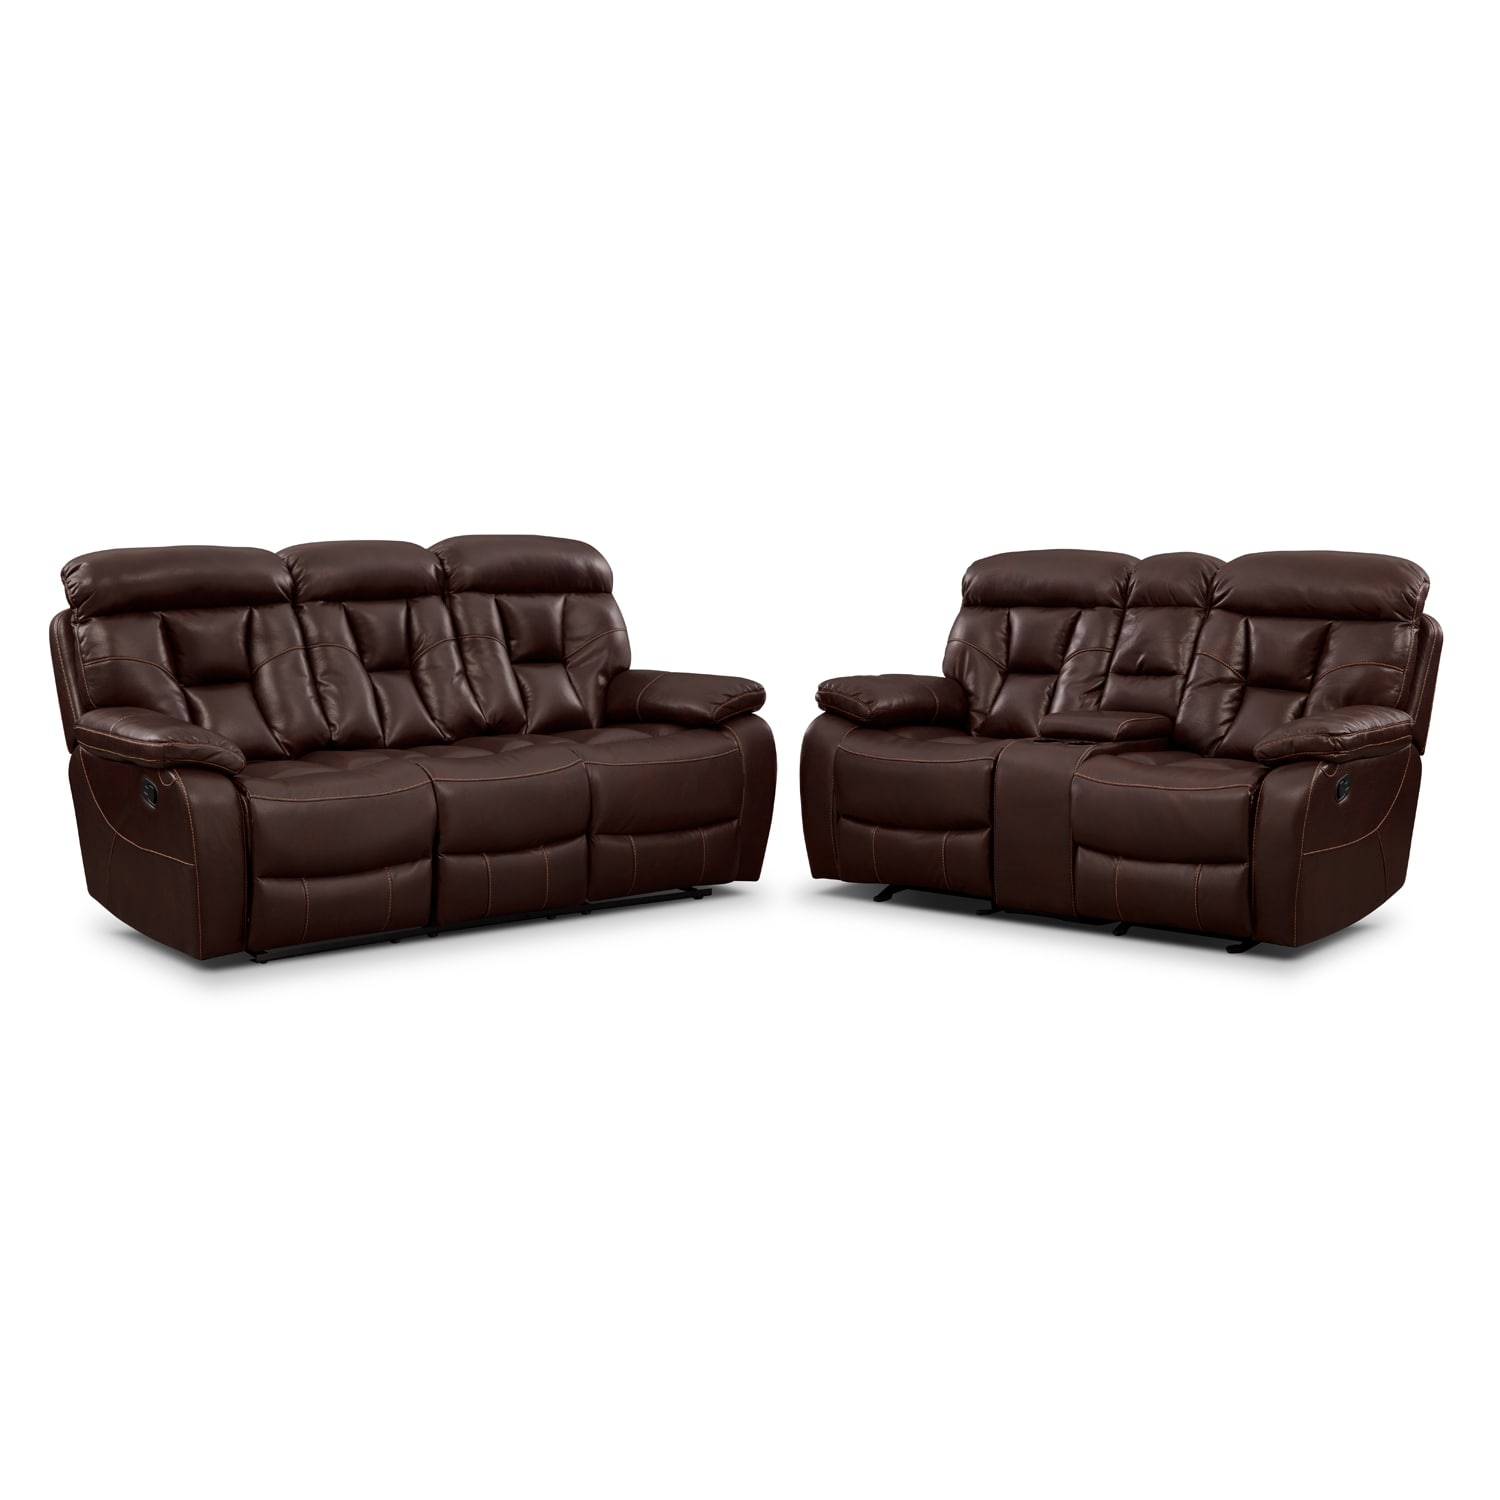 [Dakota 2 Pc. Reclining Living Room]